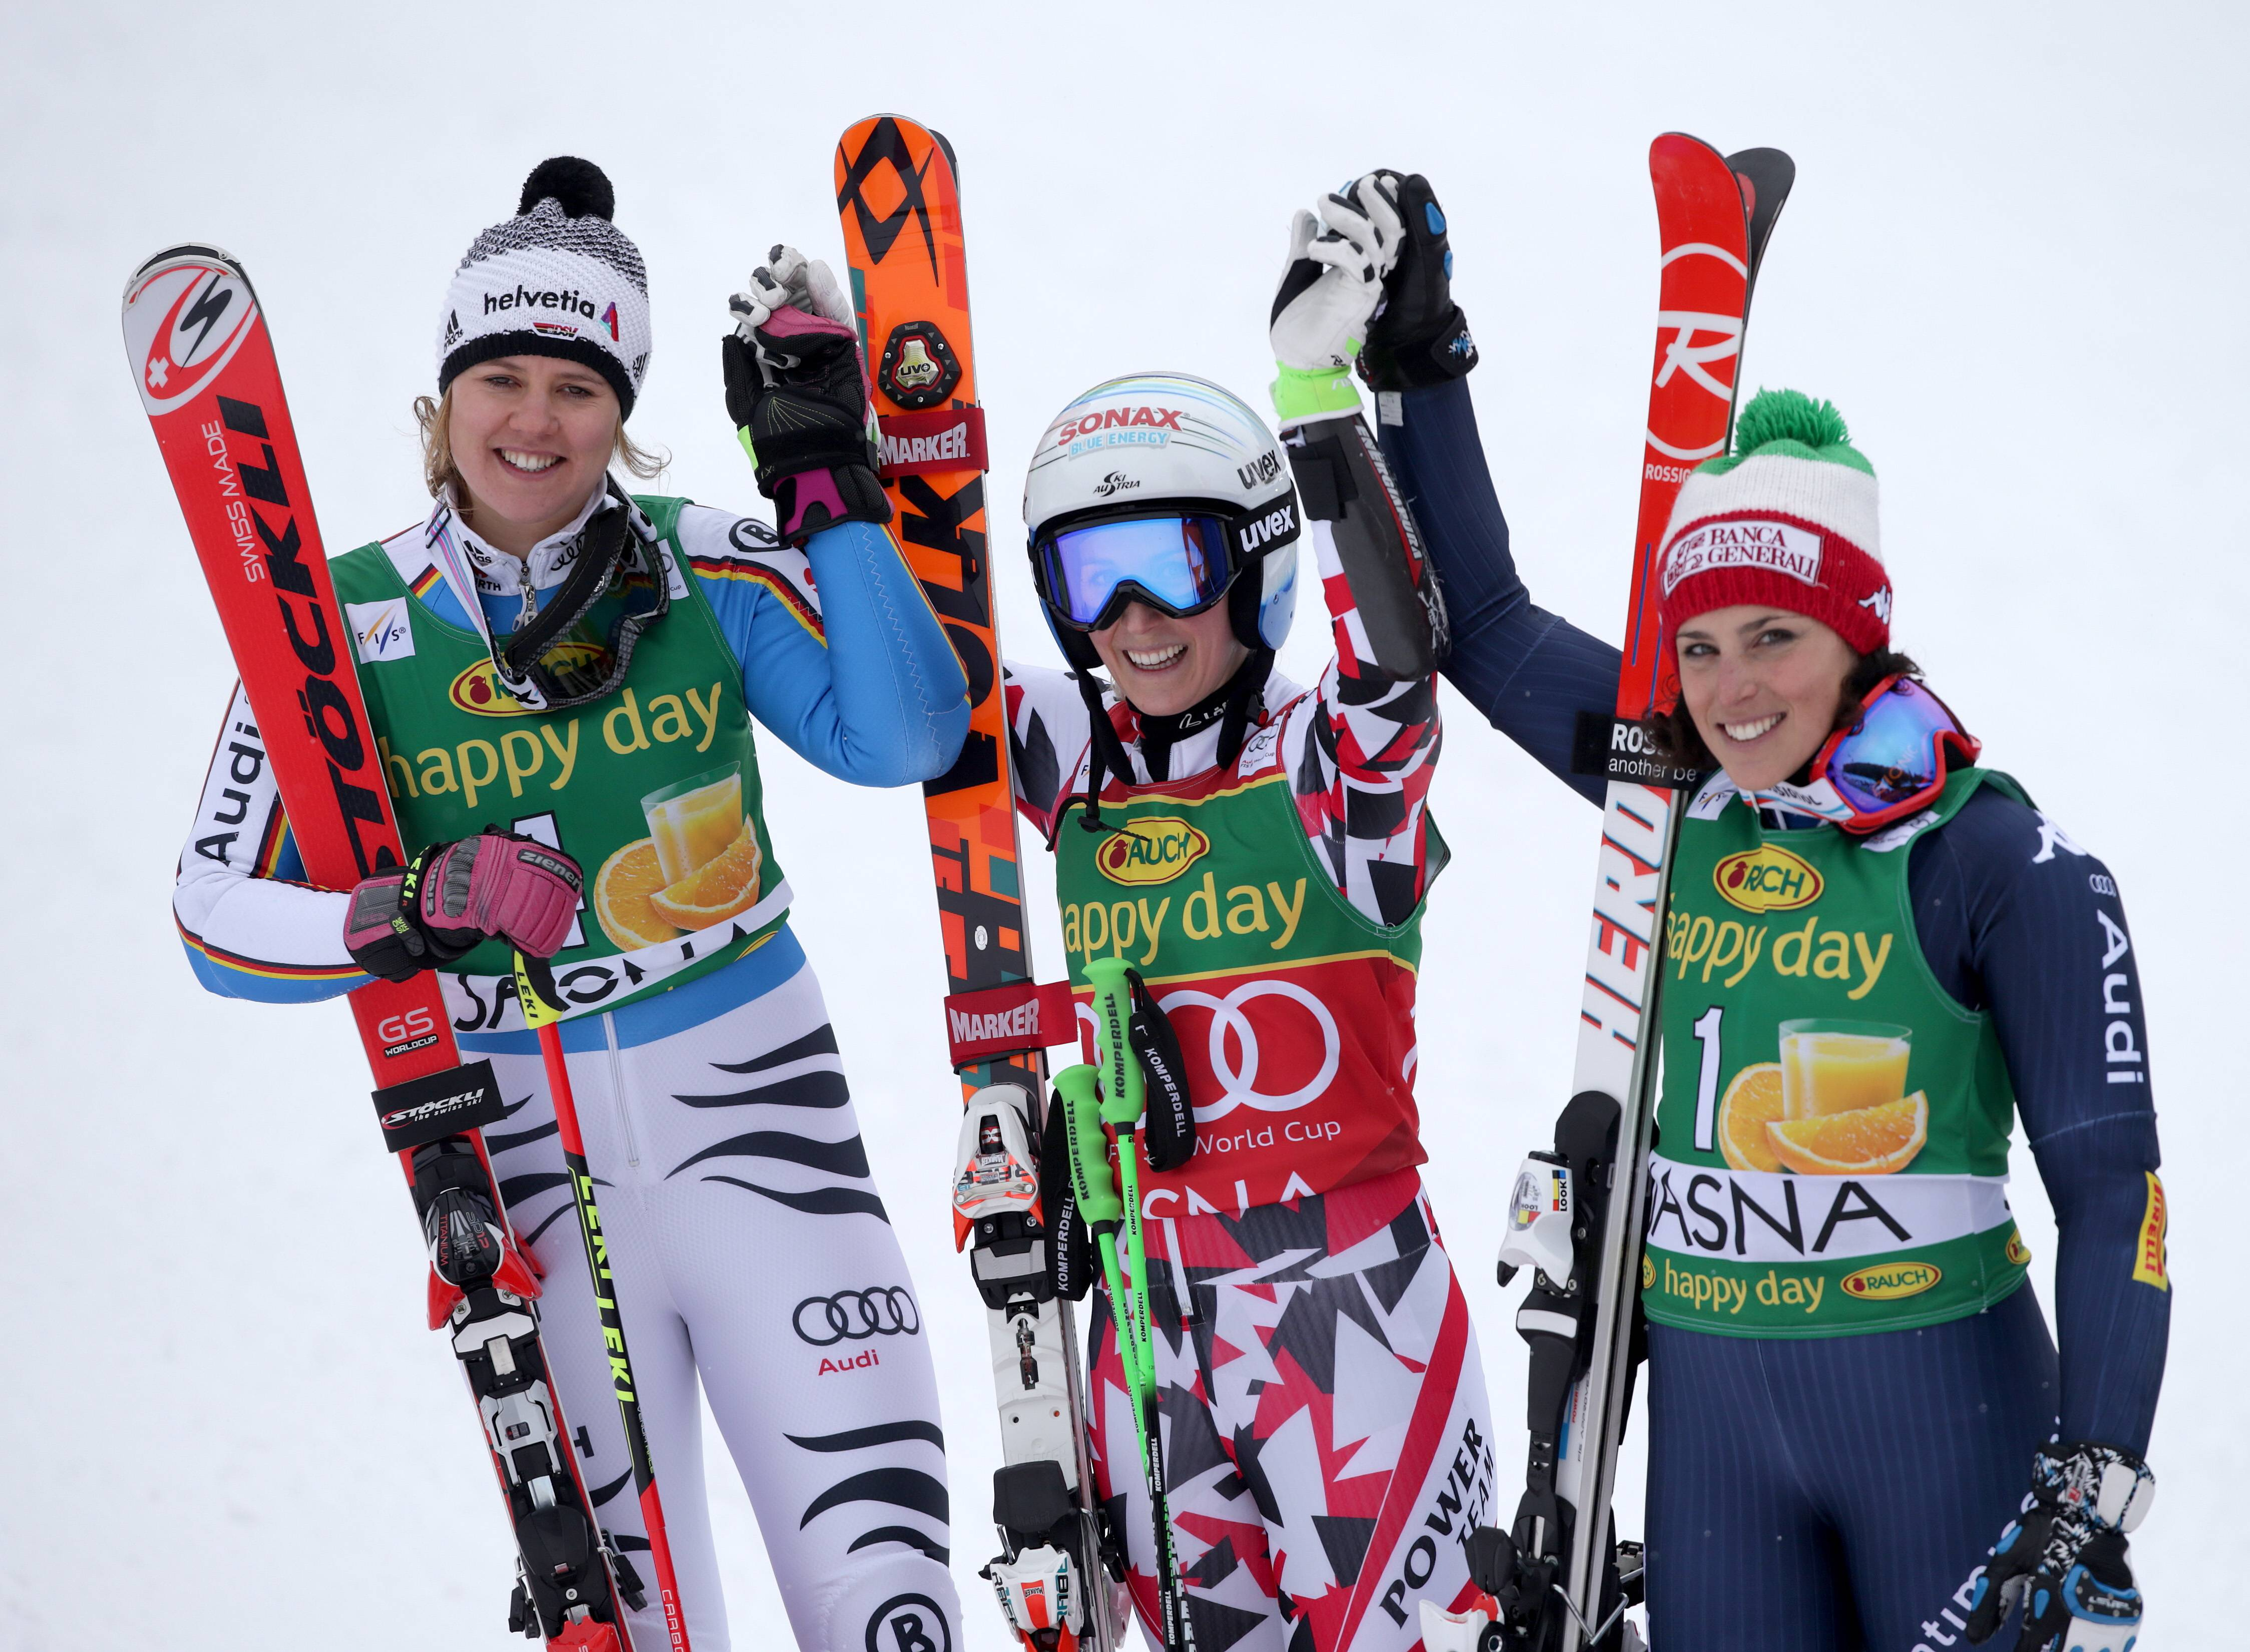 ALPINE SKIING - FIS WC Jasna JASNA,SLOVAKIA,07.MAR.16 - ALPINE SKIING - FIS World Cup, Giant Slalom, Ladies. Image Shows Viktoria Rebensburg (GER), Eva-Maria Brem (AUT) And Federica Brignone (ITA). Keywords: Stoeckli. PUBLICATIONxINxGERxHUNxONLY GEPAxpictures/xWalterxLuger  Alpine Skiing FIS WC Jasna Jasna Slovakia 07 Mar 16 Alpine Skiing FIS World Cup Giant Slalom Ladies Image Shows Viktoria Vine Castle Ger Eva Mary Brem AUT And Federica Brignone ITA Keywords Stoeckli PUBLICATIONxINxGERxHUNxONLY GEPAxpictures XWalterxLuger